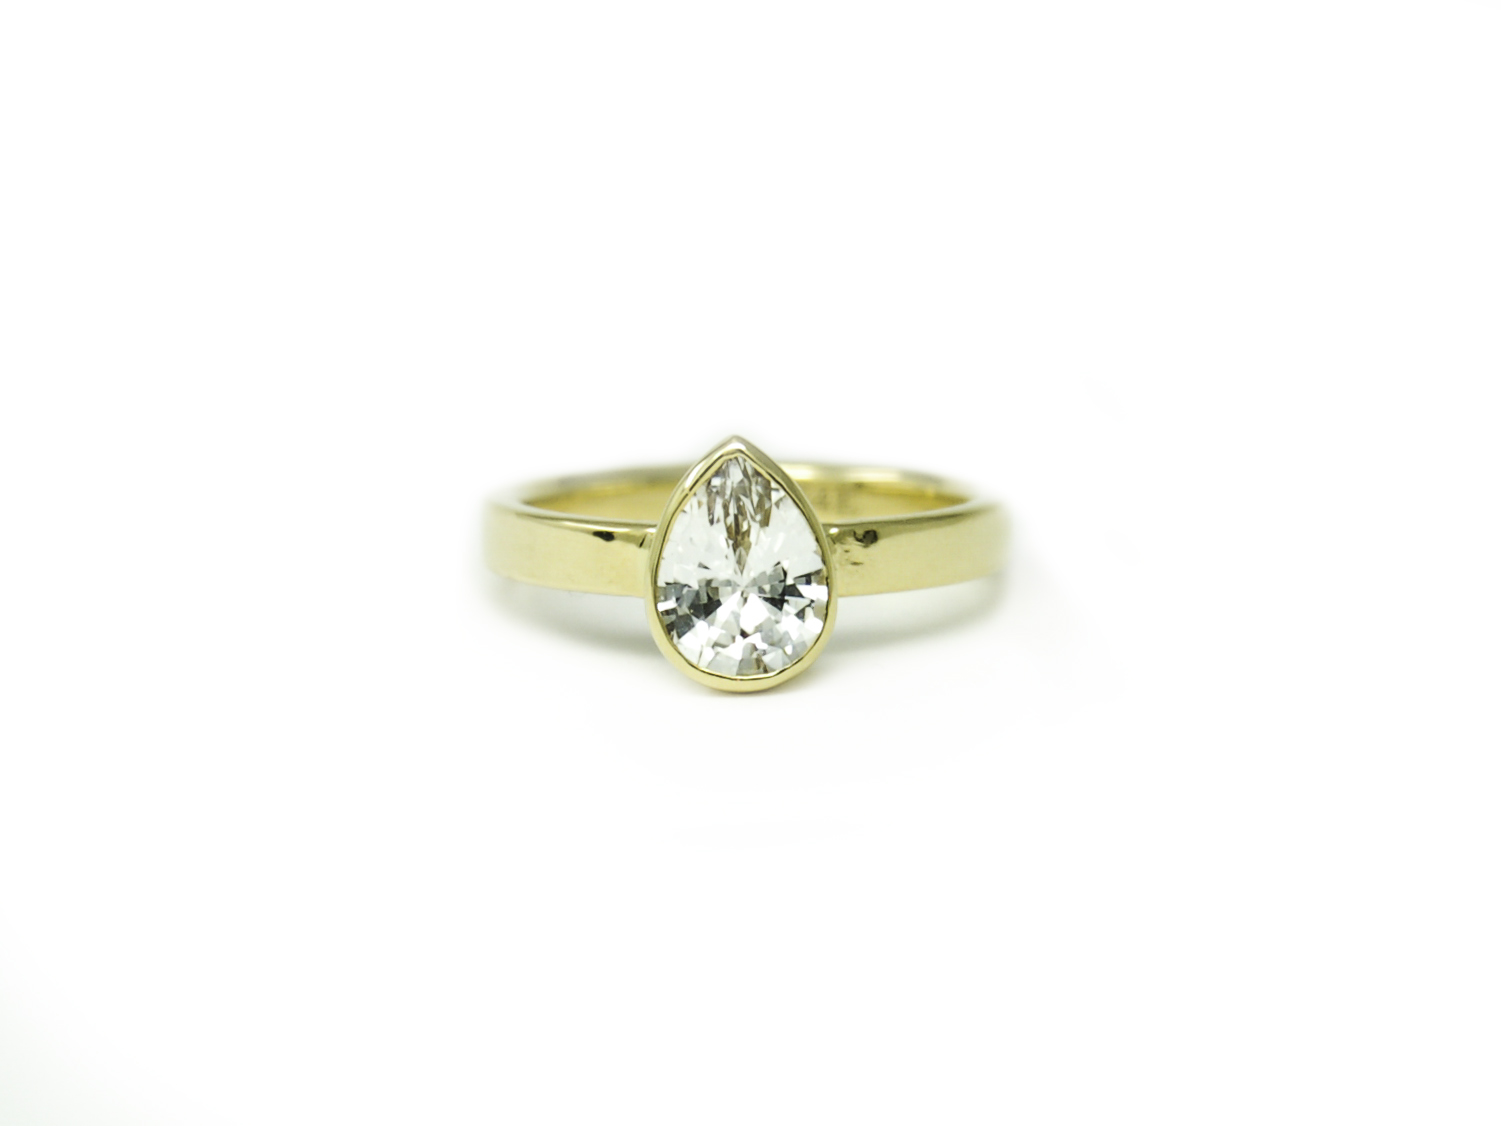 A recycled yellow gold engagement ring featuring a stunning white sapphire.